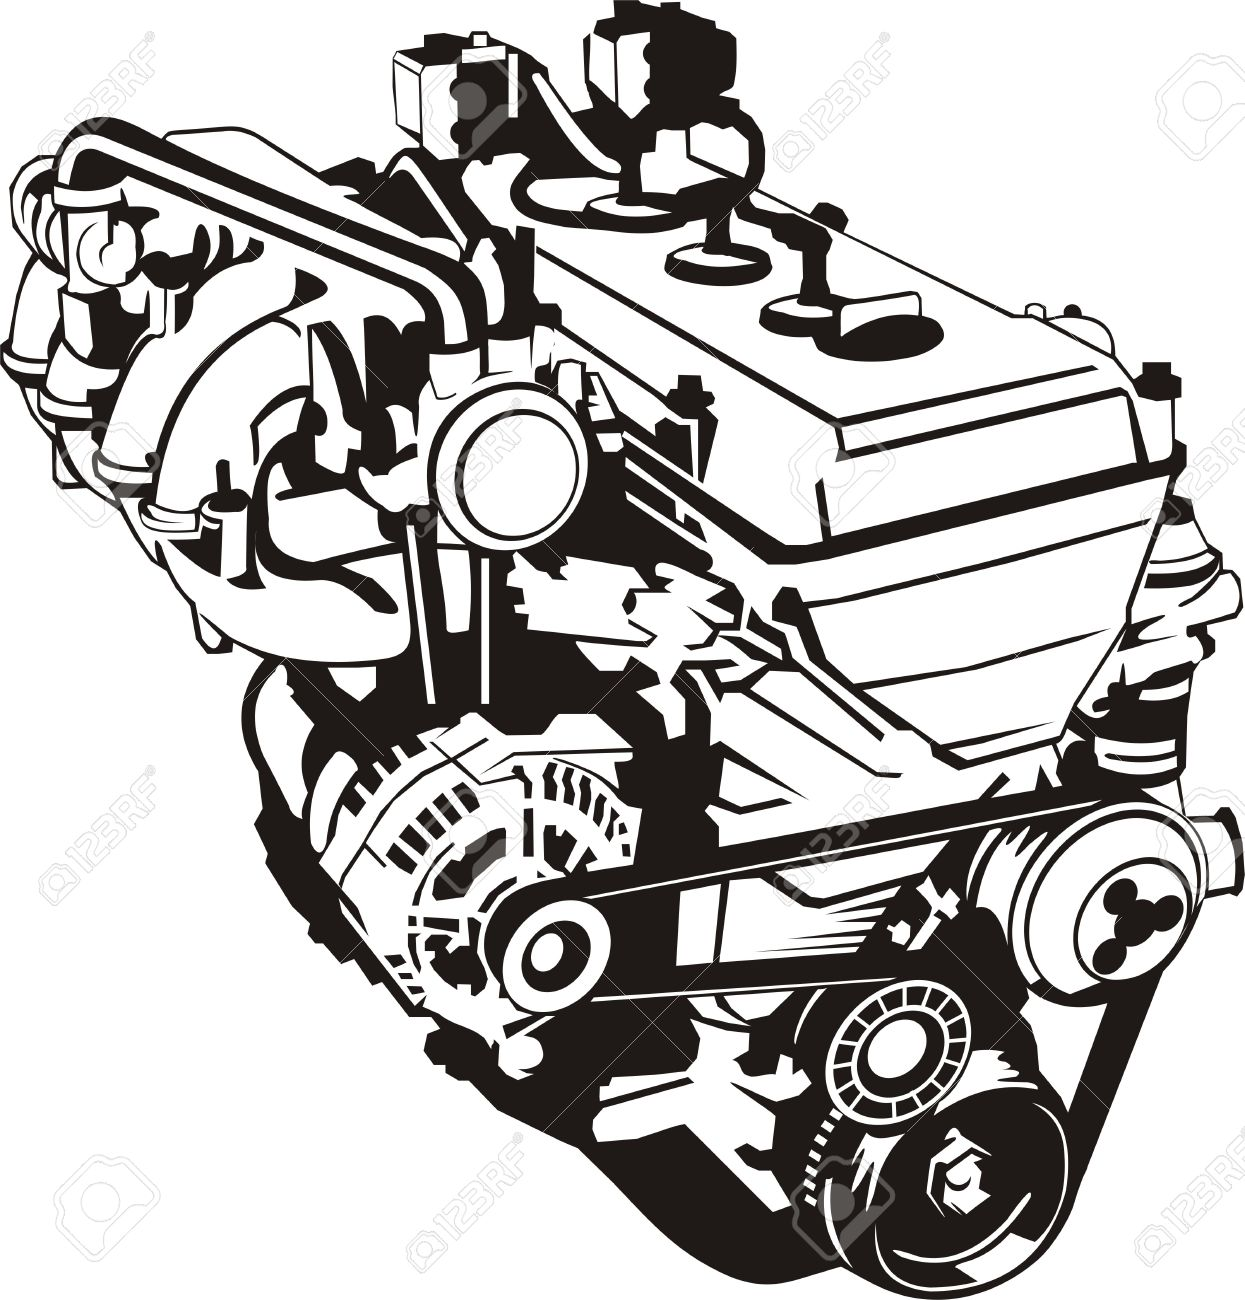 Internal combustion engine clipart - Clipground